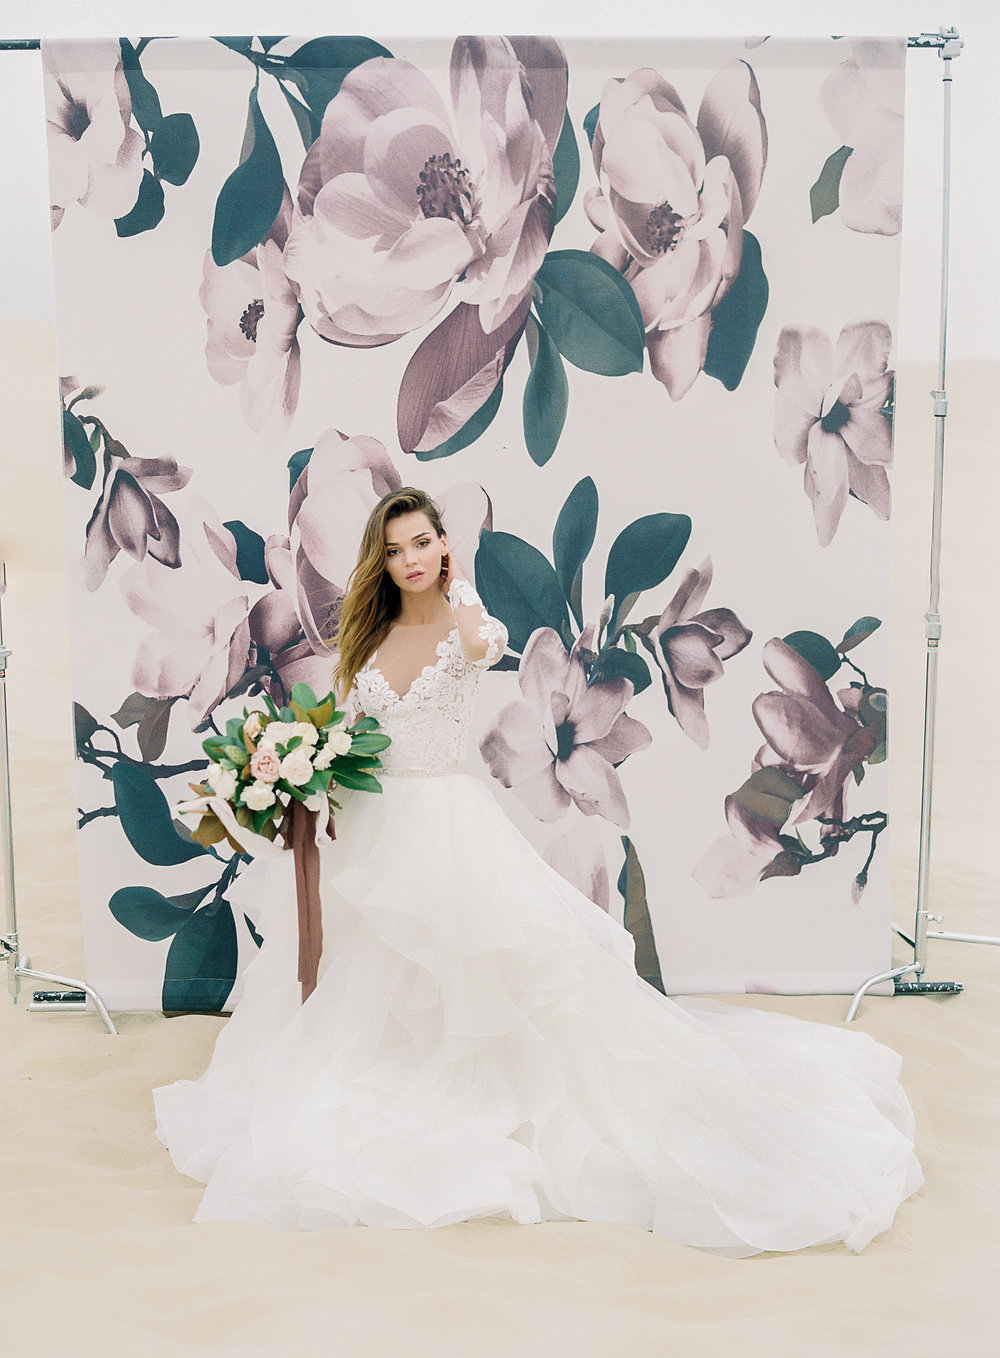 magnolia-photo-booth-backdrop.jpg